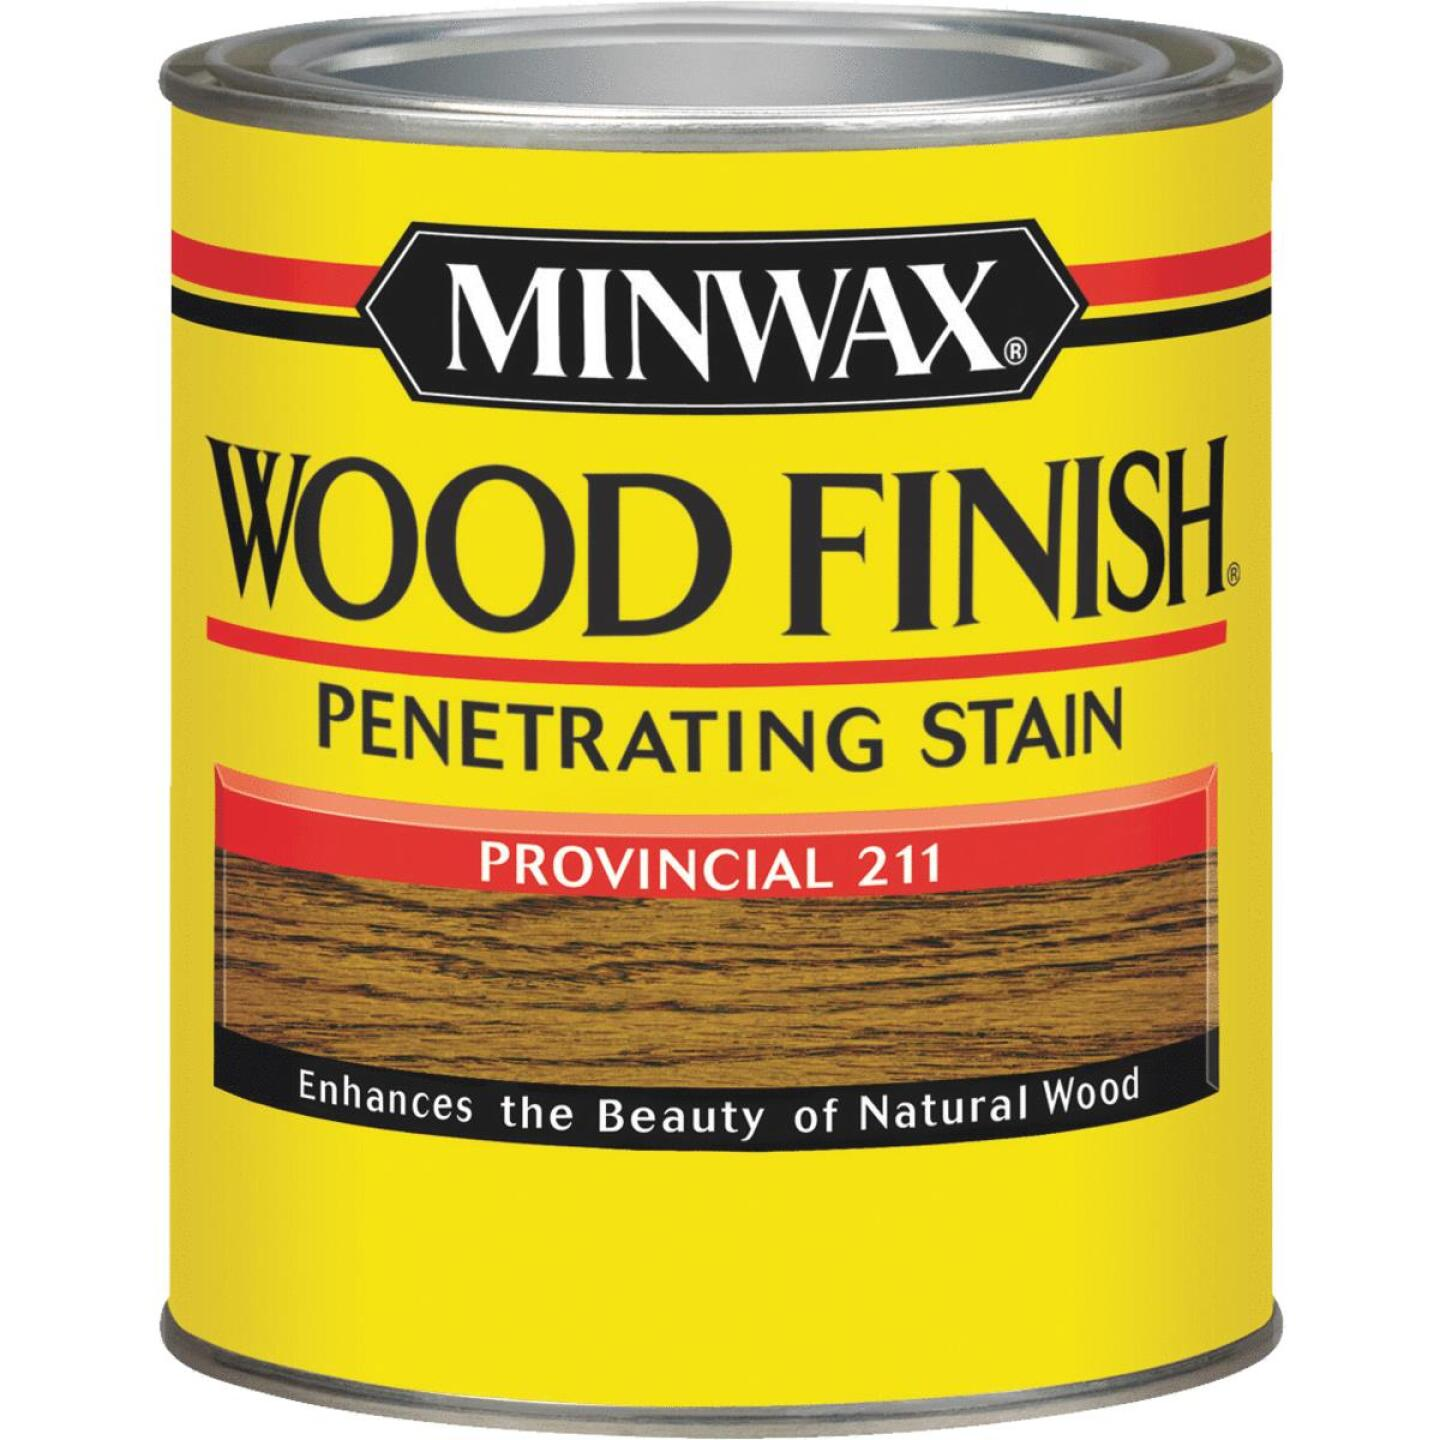 Minwax Wood Finish Penetrating Stain, Provincial, 1 Qt. Image 1